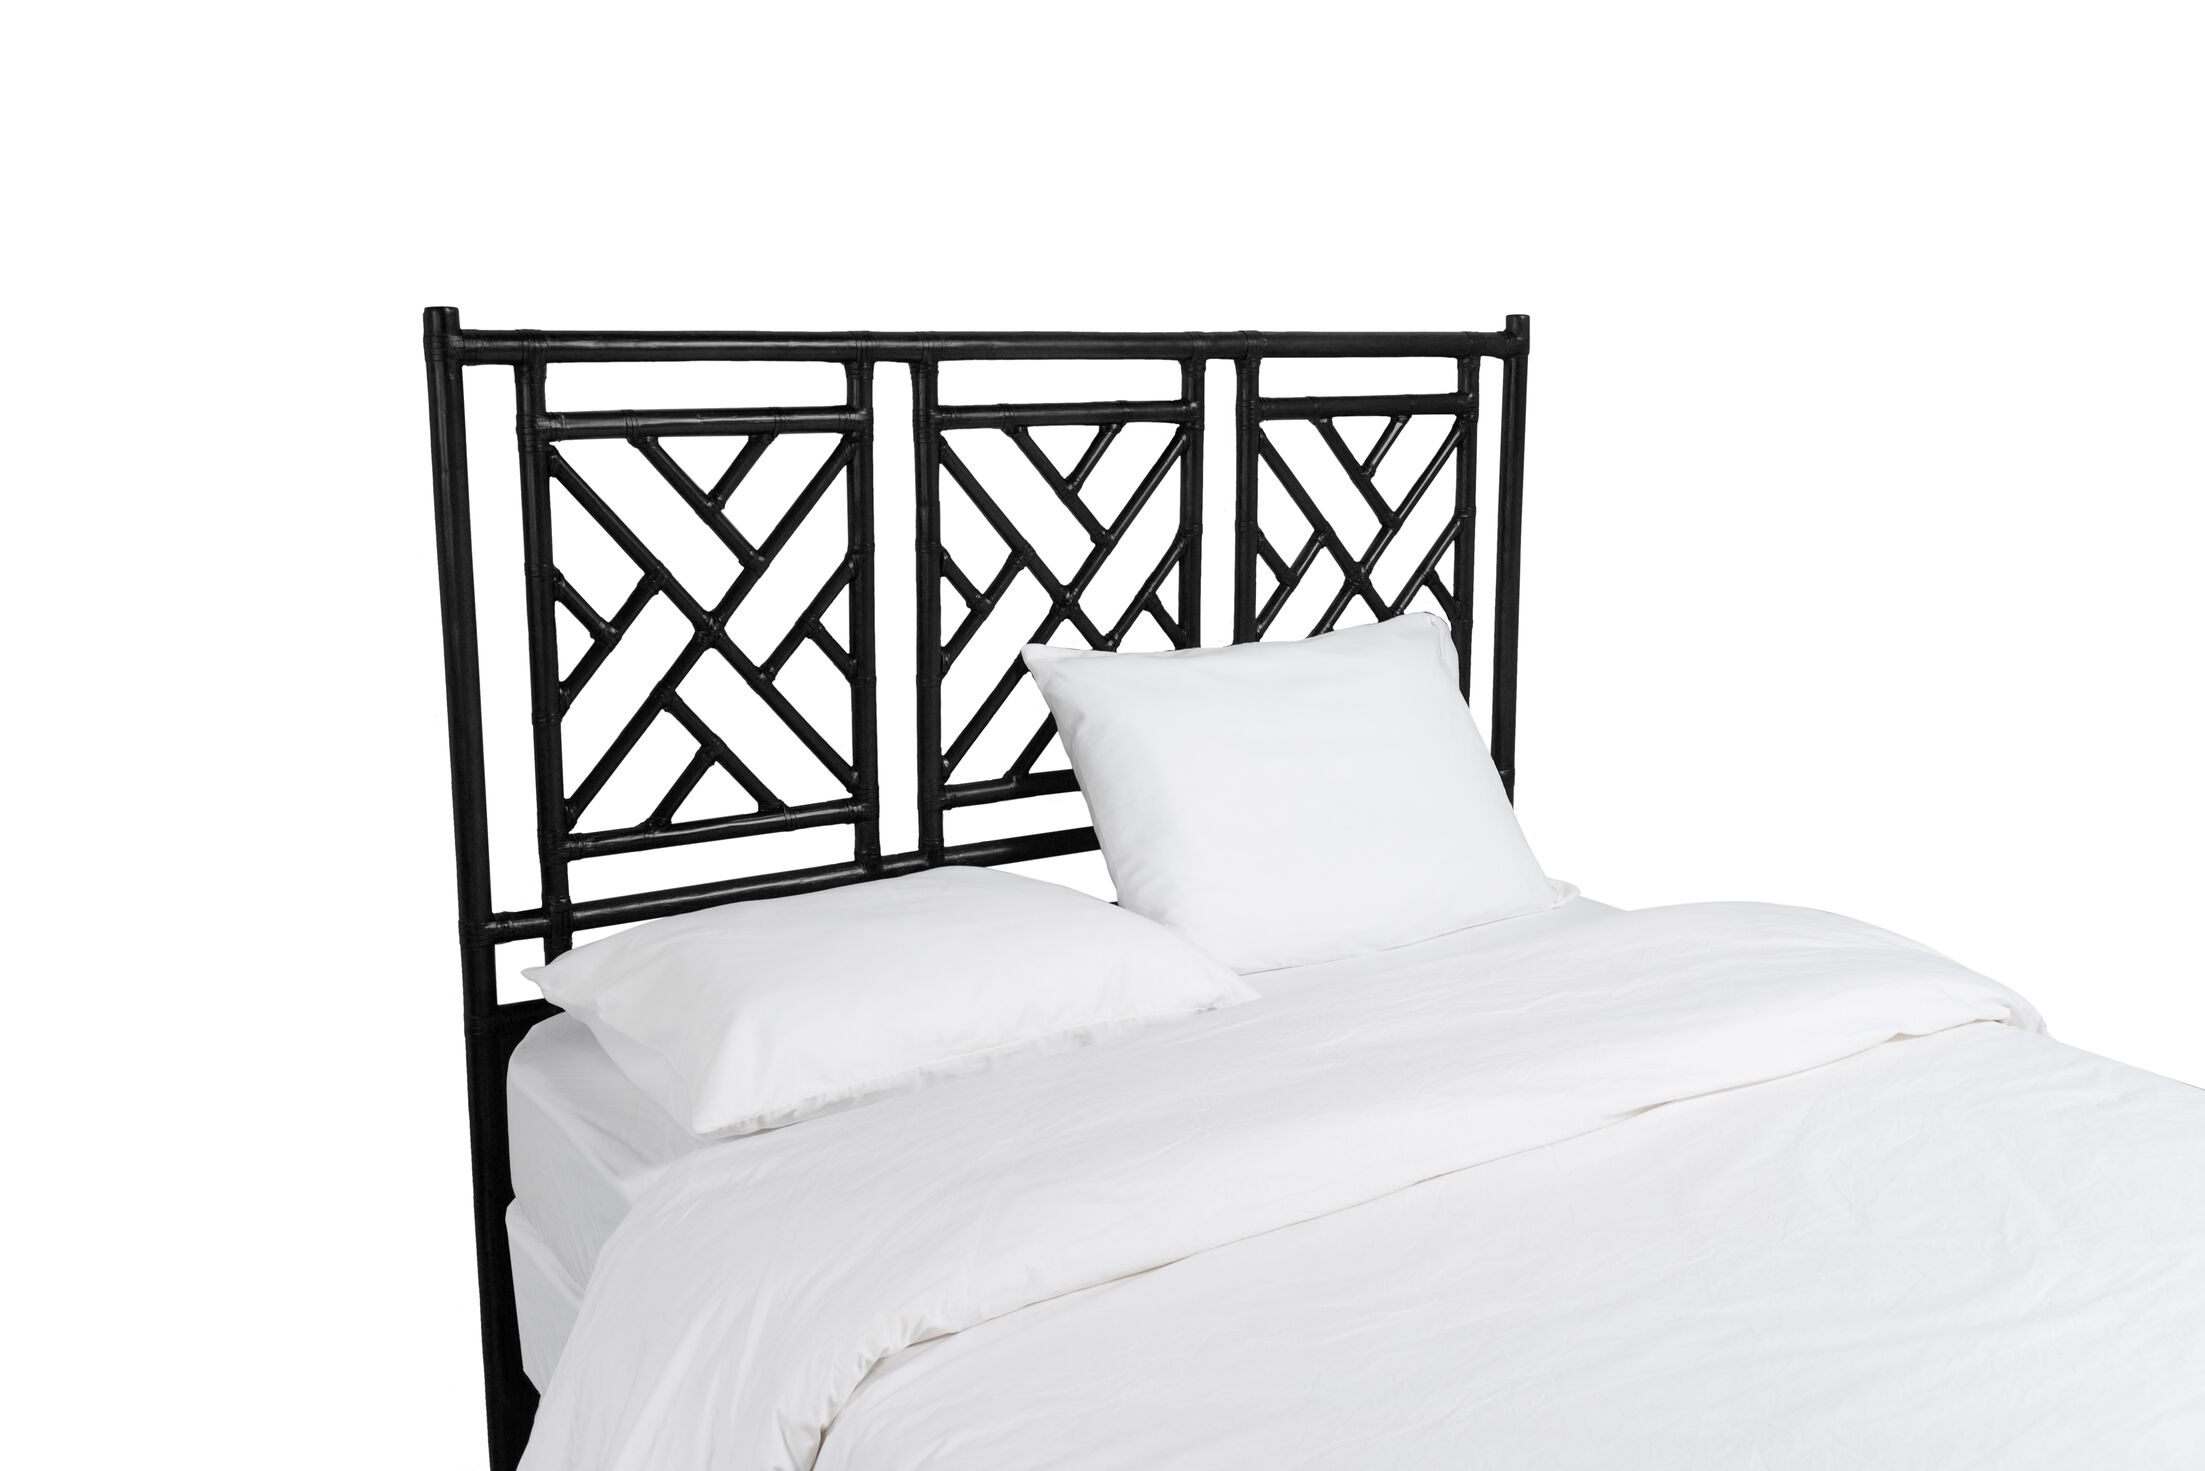 Chinese Chippendale Open-Frame Headboard Size: King, Color: Black